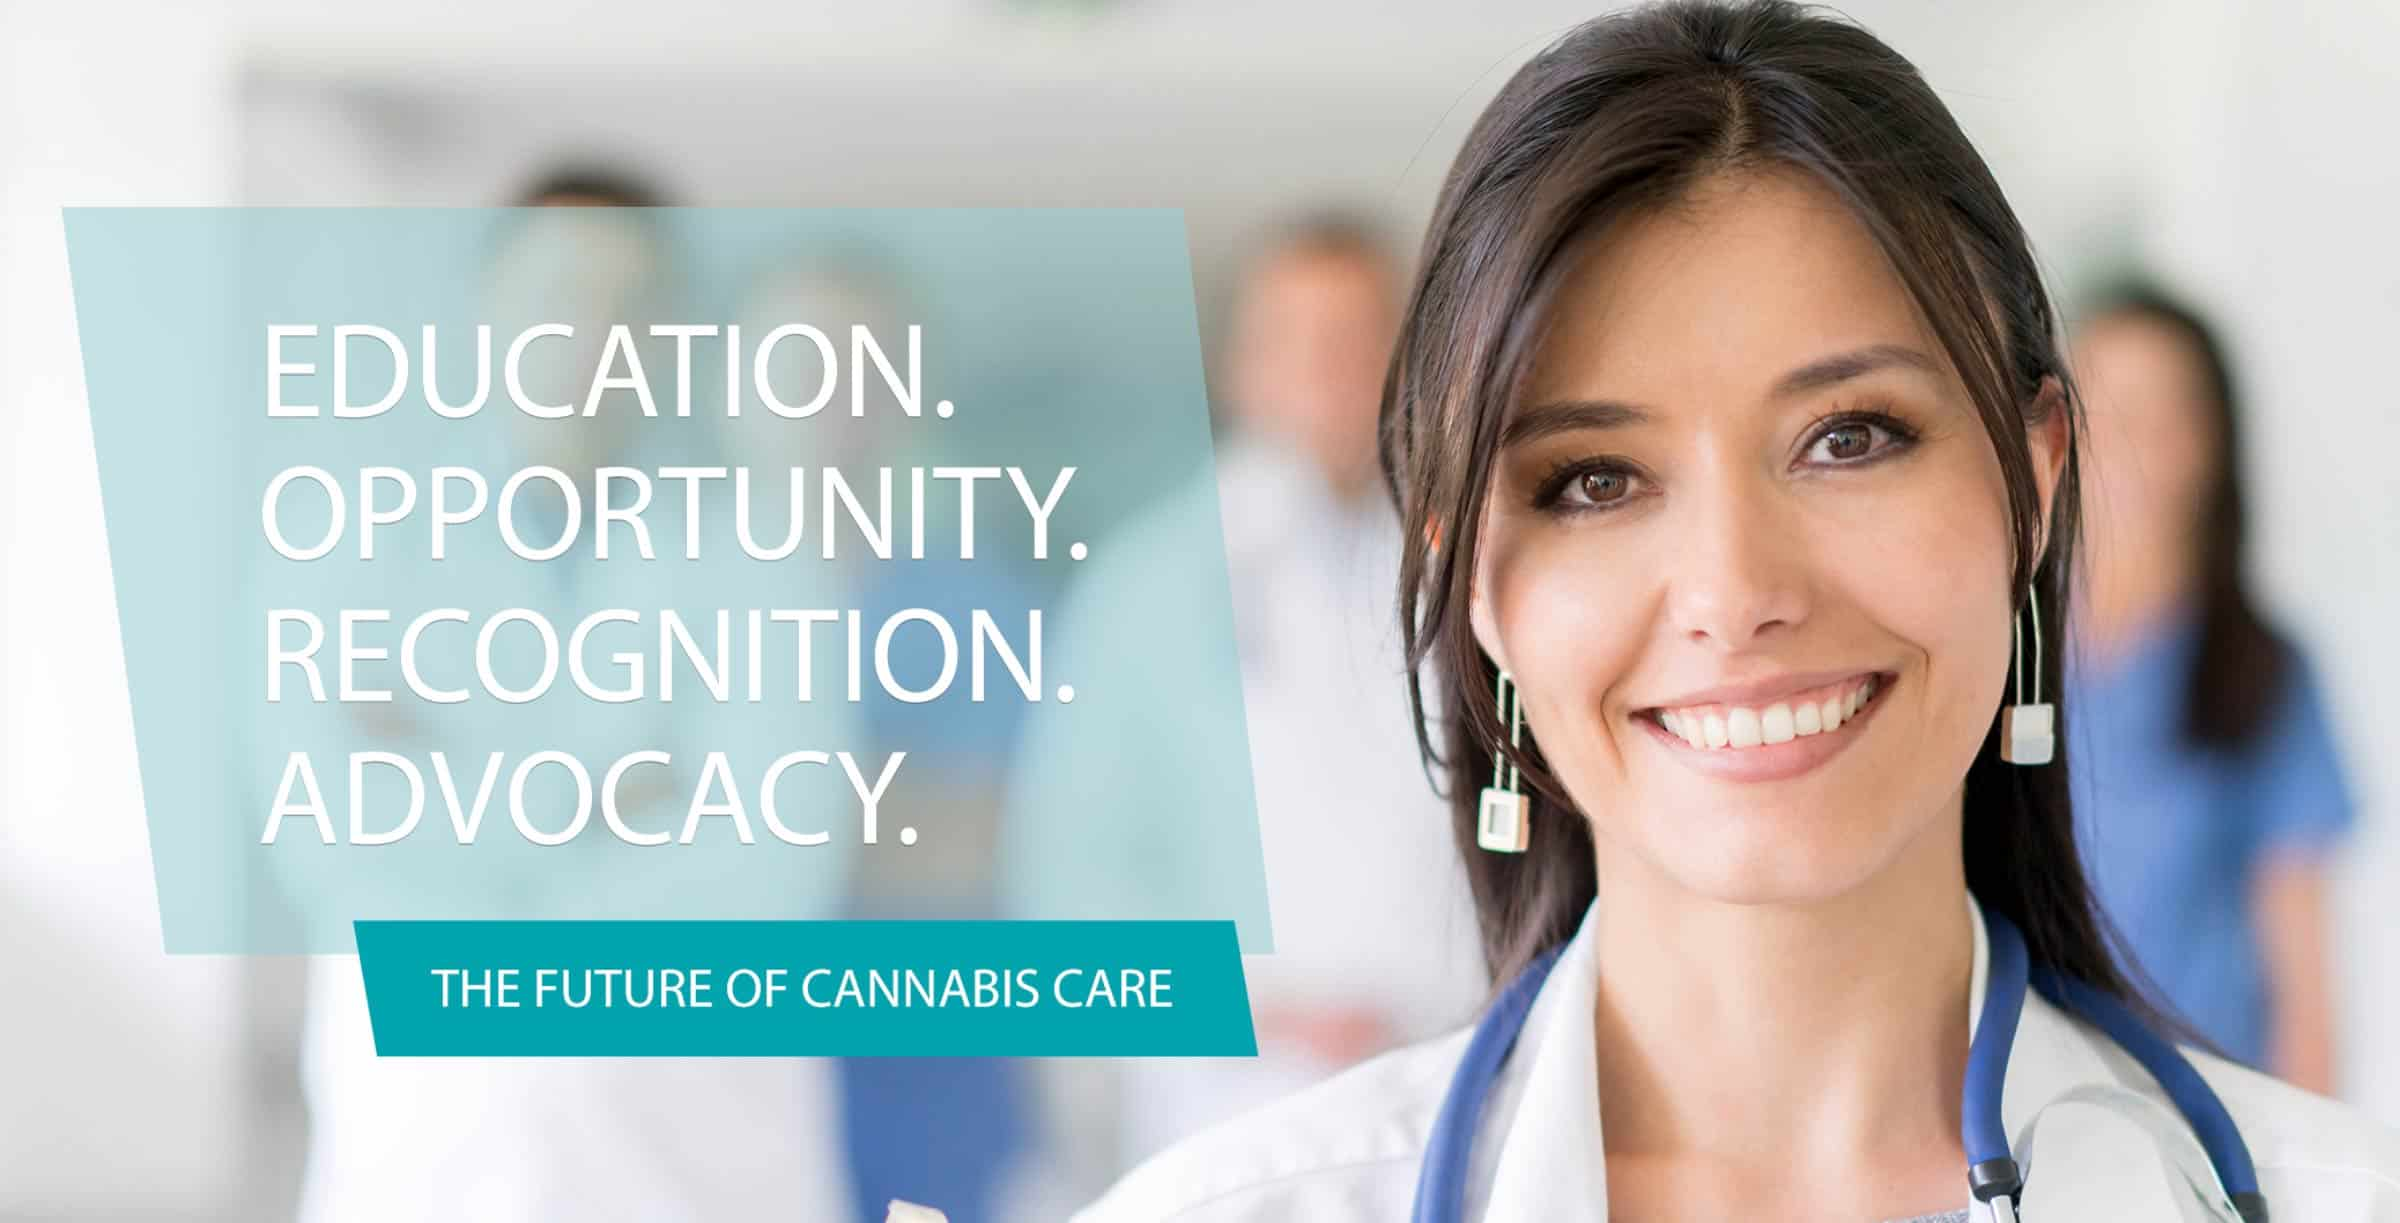 Education, Opportunity, Recognition, Advocacy - The Future of Cannabis Care